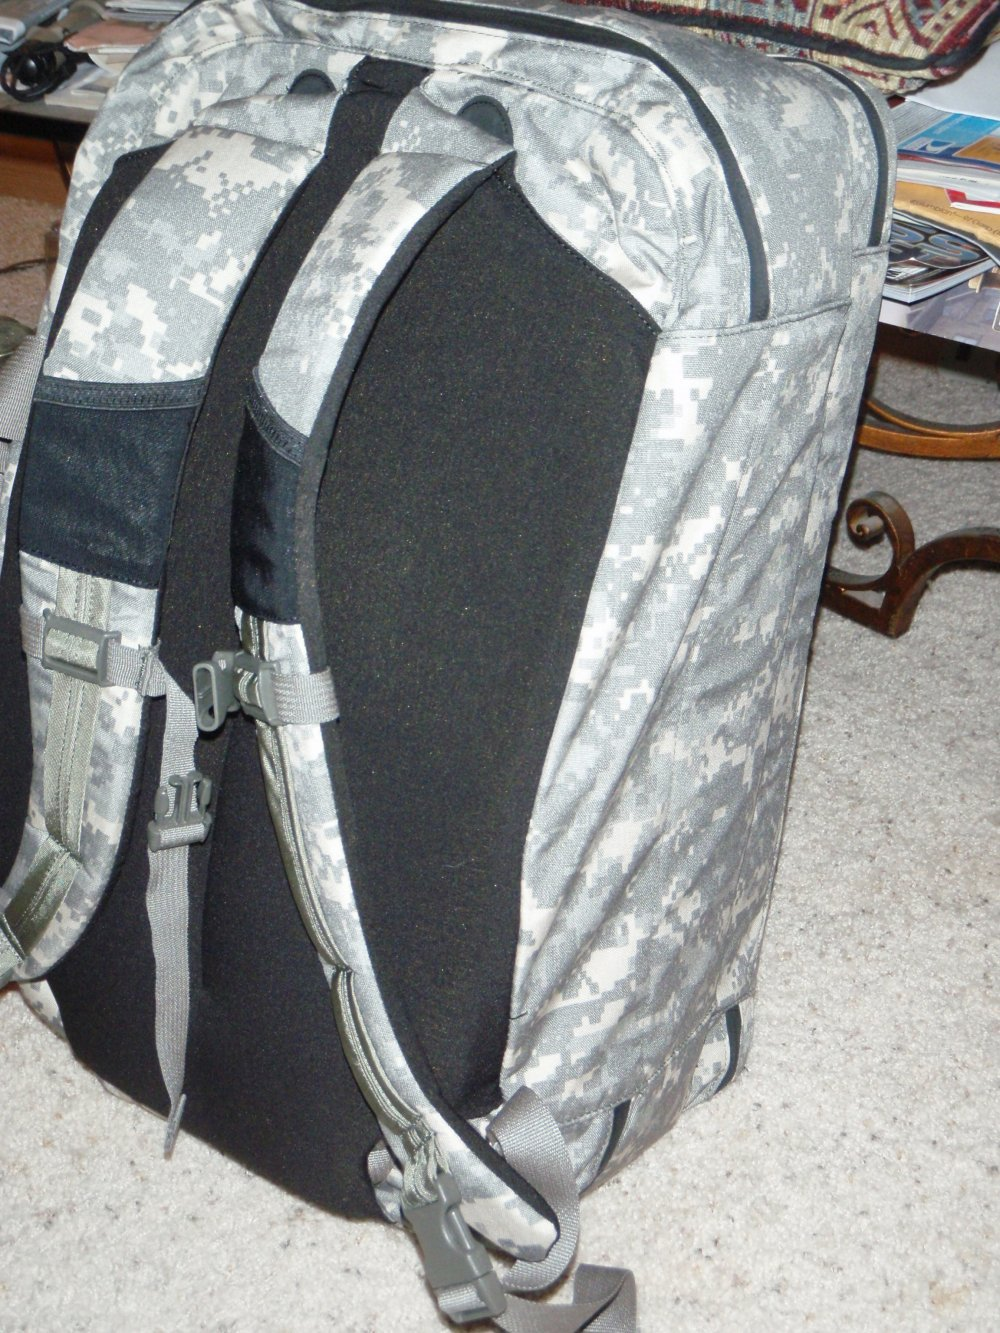 granite gear rat patrol travel commute bag backpack acu camo pattern 15 <!  :en  >Rat Patrol Travel Bag by Granite Gear Tactical: Briefcase, Backpack, Laptop Case, and Daypack, All Rolled into One. <!  :  >